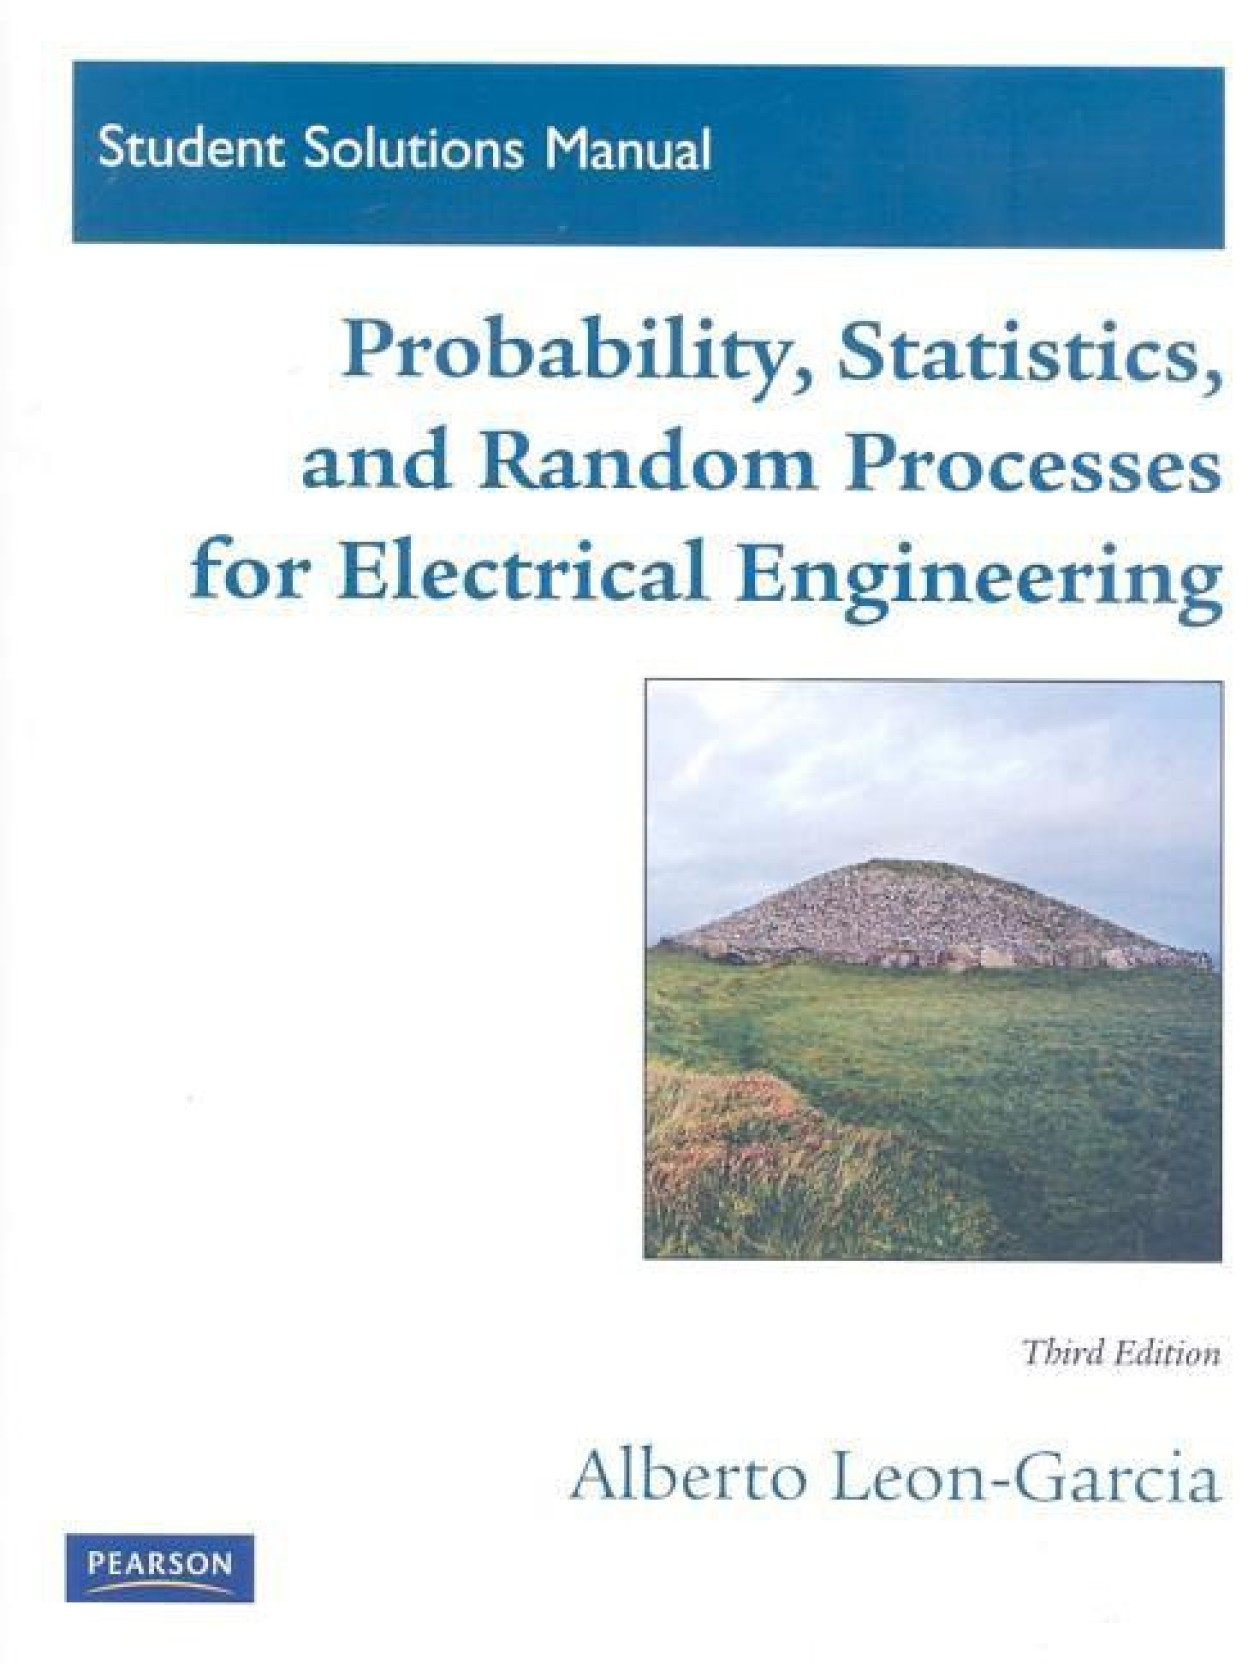 Student Solutions Manual for Probability, Statistics and Random Processes  for Electrical Engineering. Share